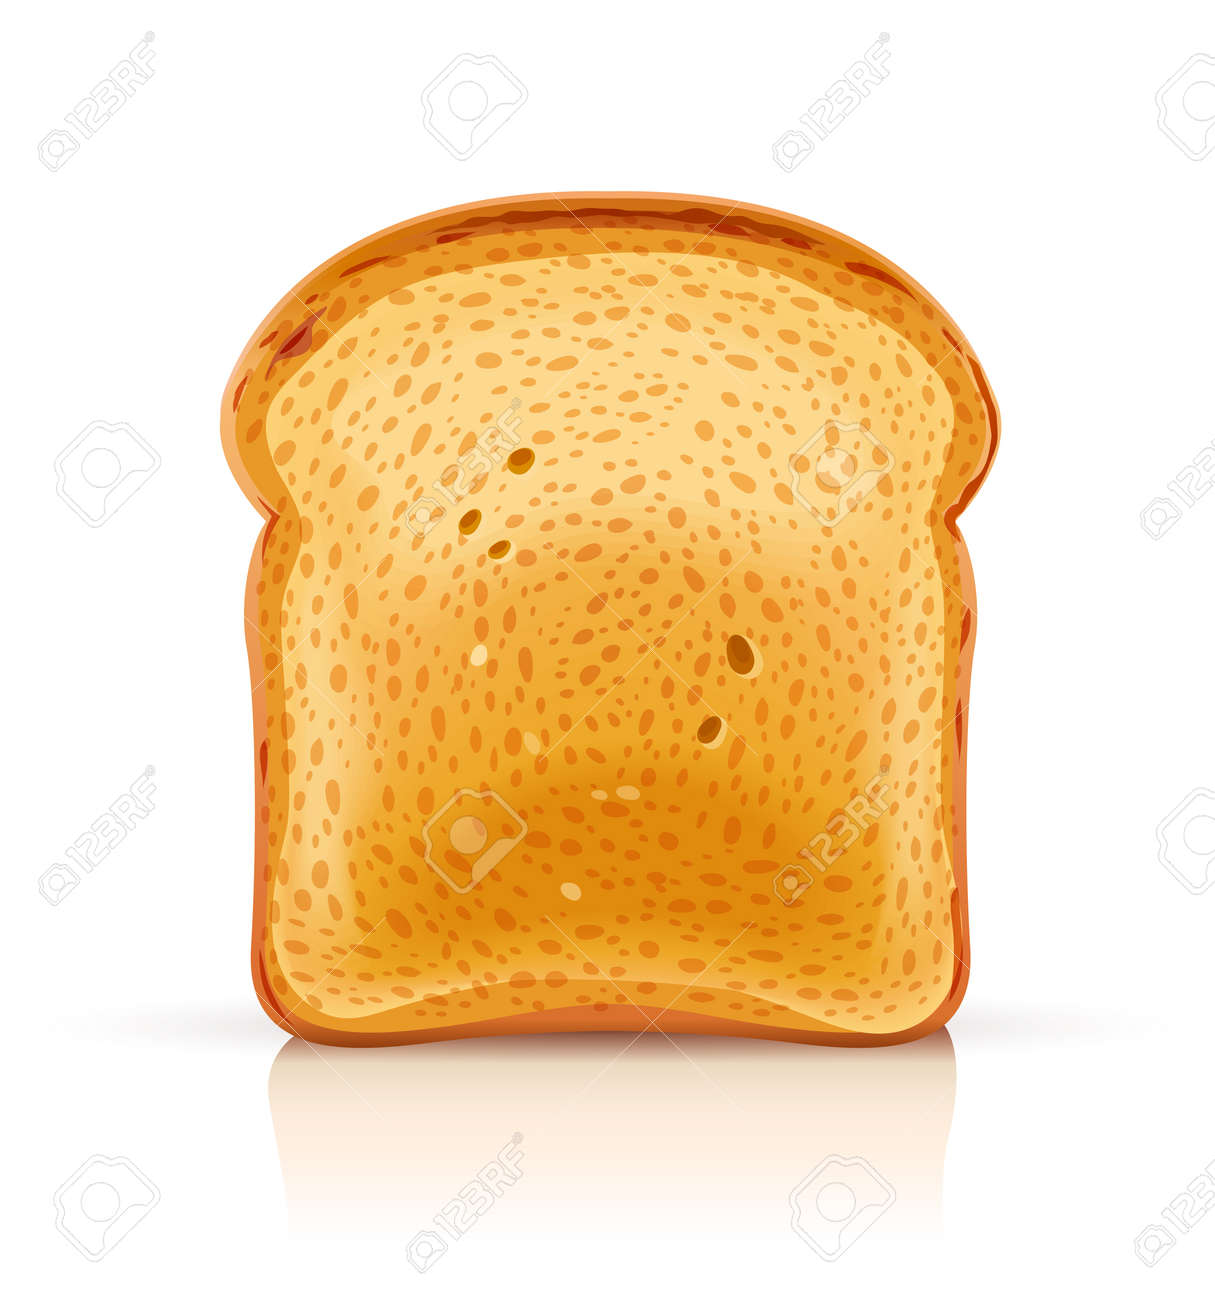 Bread toast for sandwich piece of roasted crouton. Lunch, dinner, breakfast snack. Isolated white background. EPS10 vector illustration. - 100225981